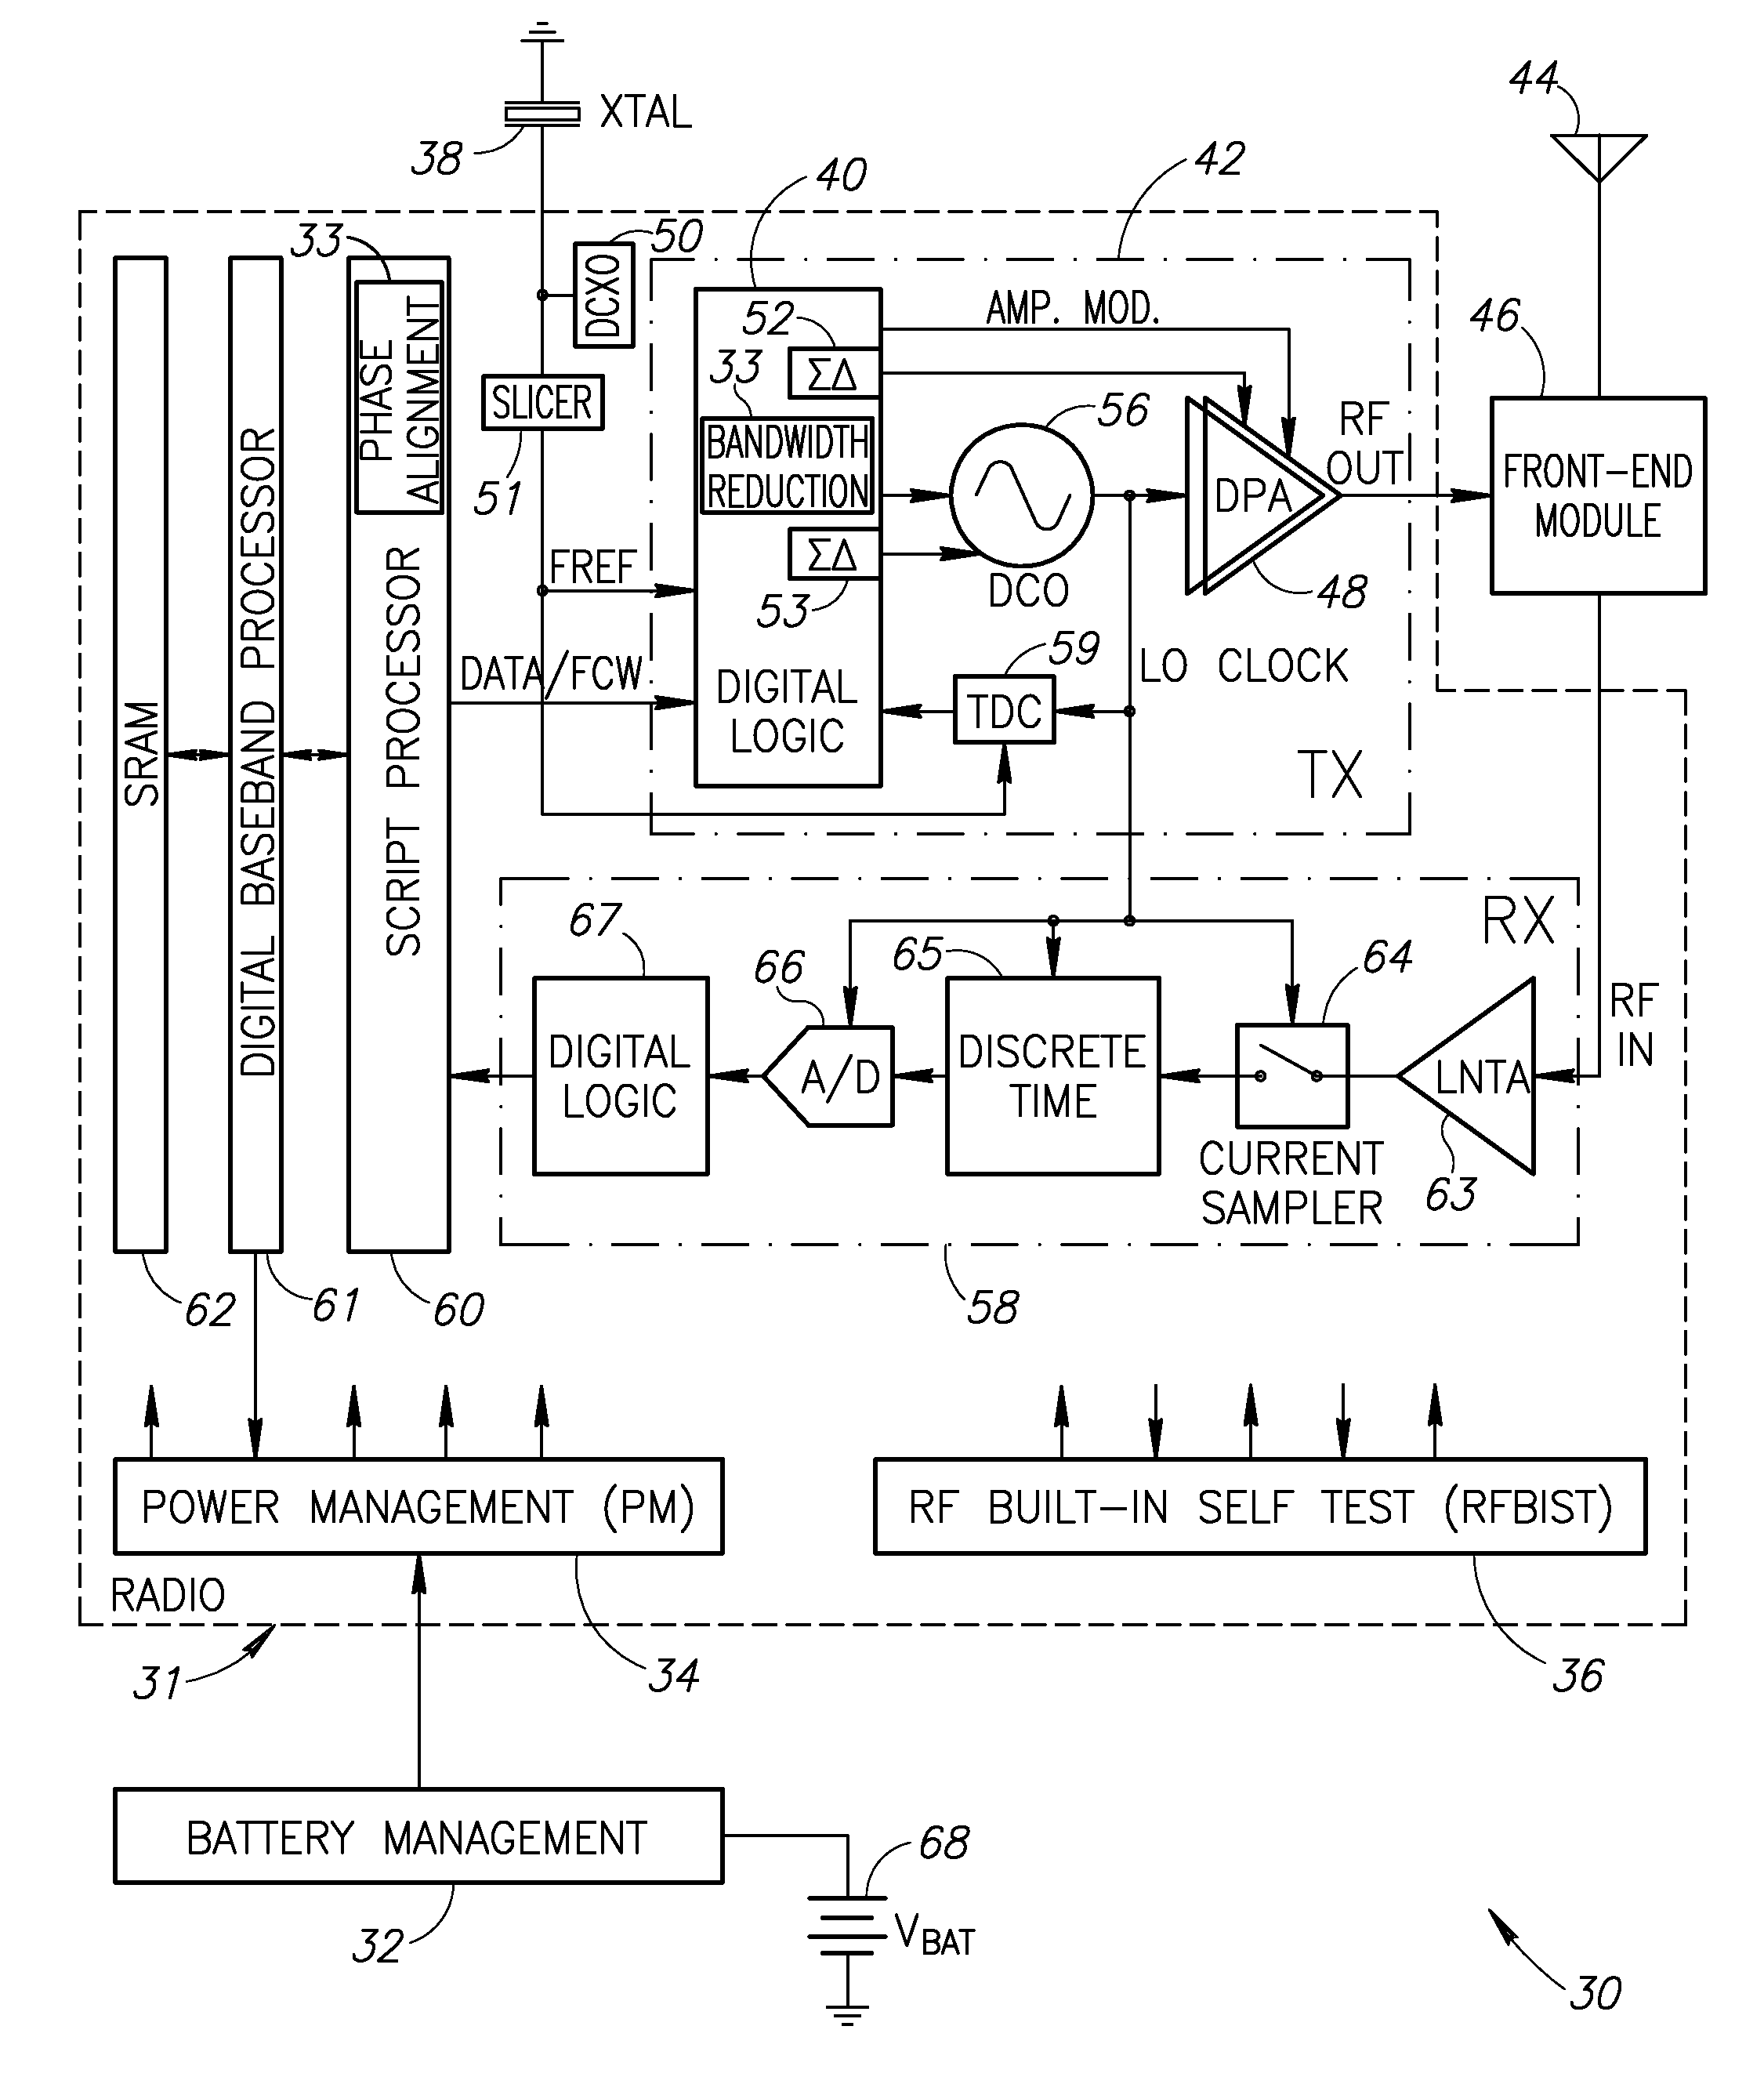 Patent Us20090258612 Bandwidth Reduction Mechanism For Polar Schematic Of 36 Khz To 40 Oscillator And Infrared Emitter Drawing